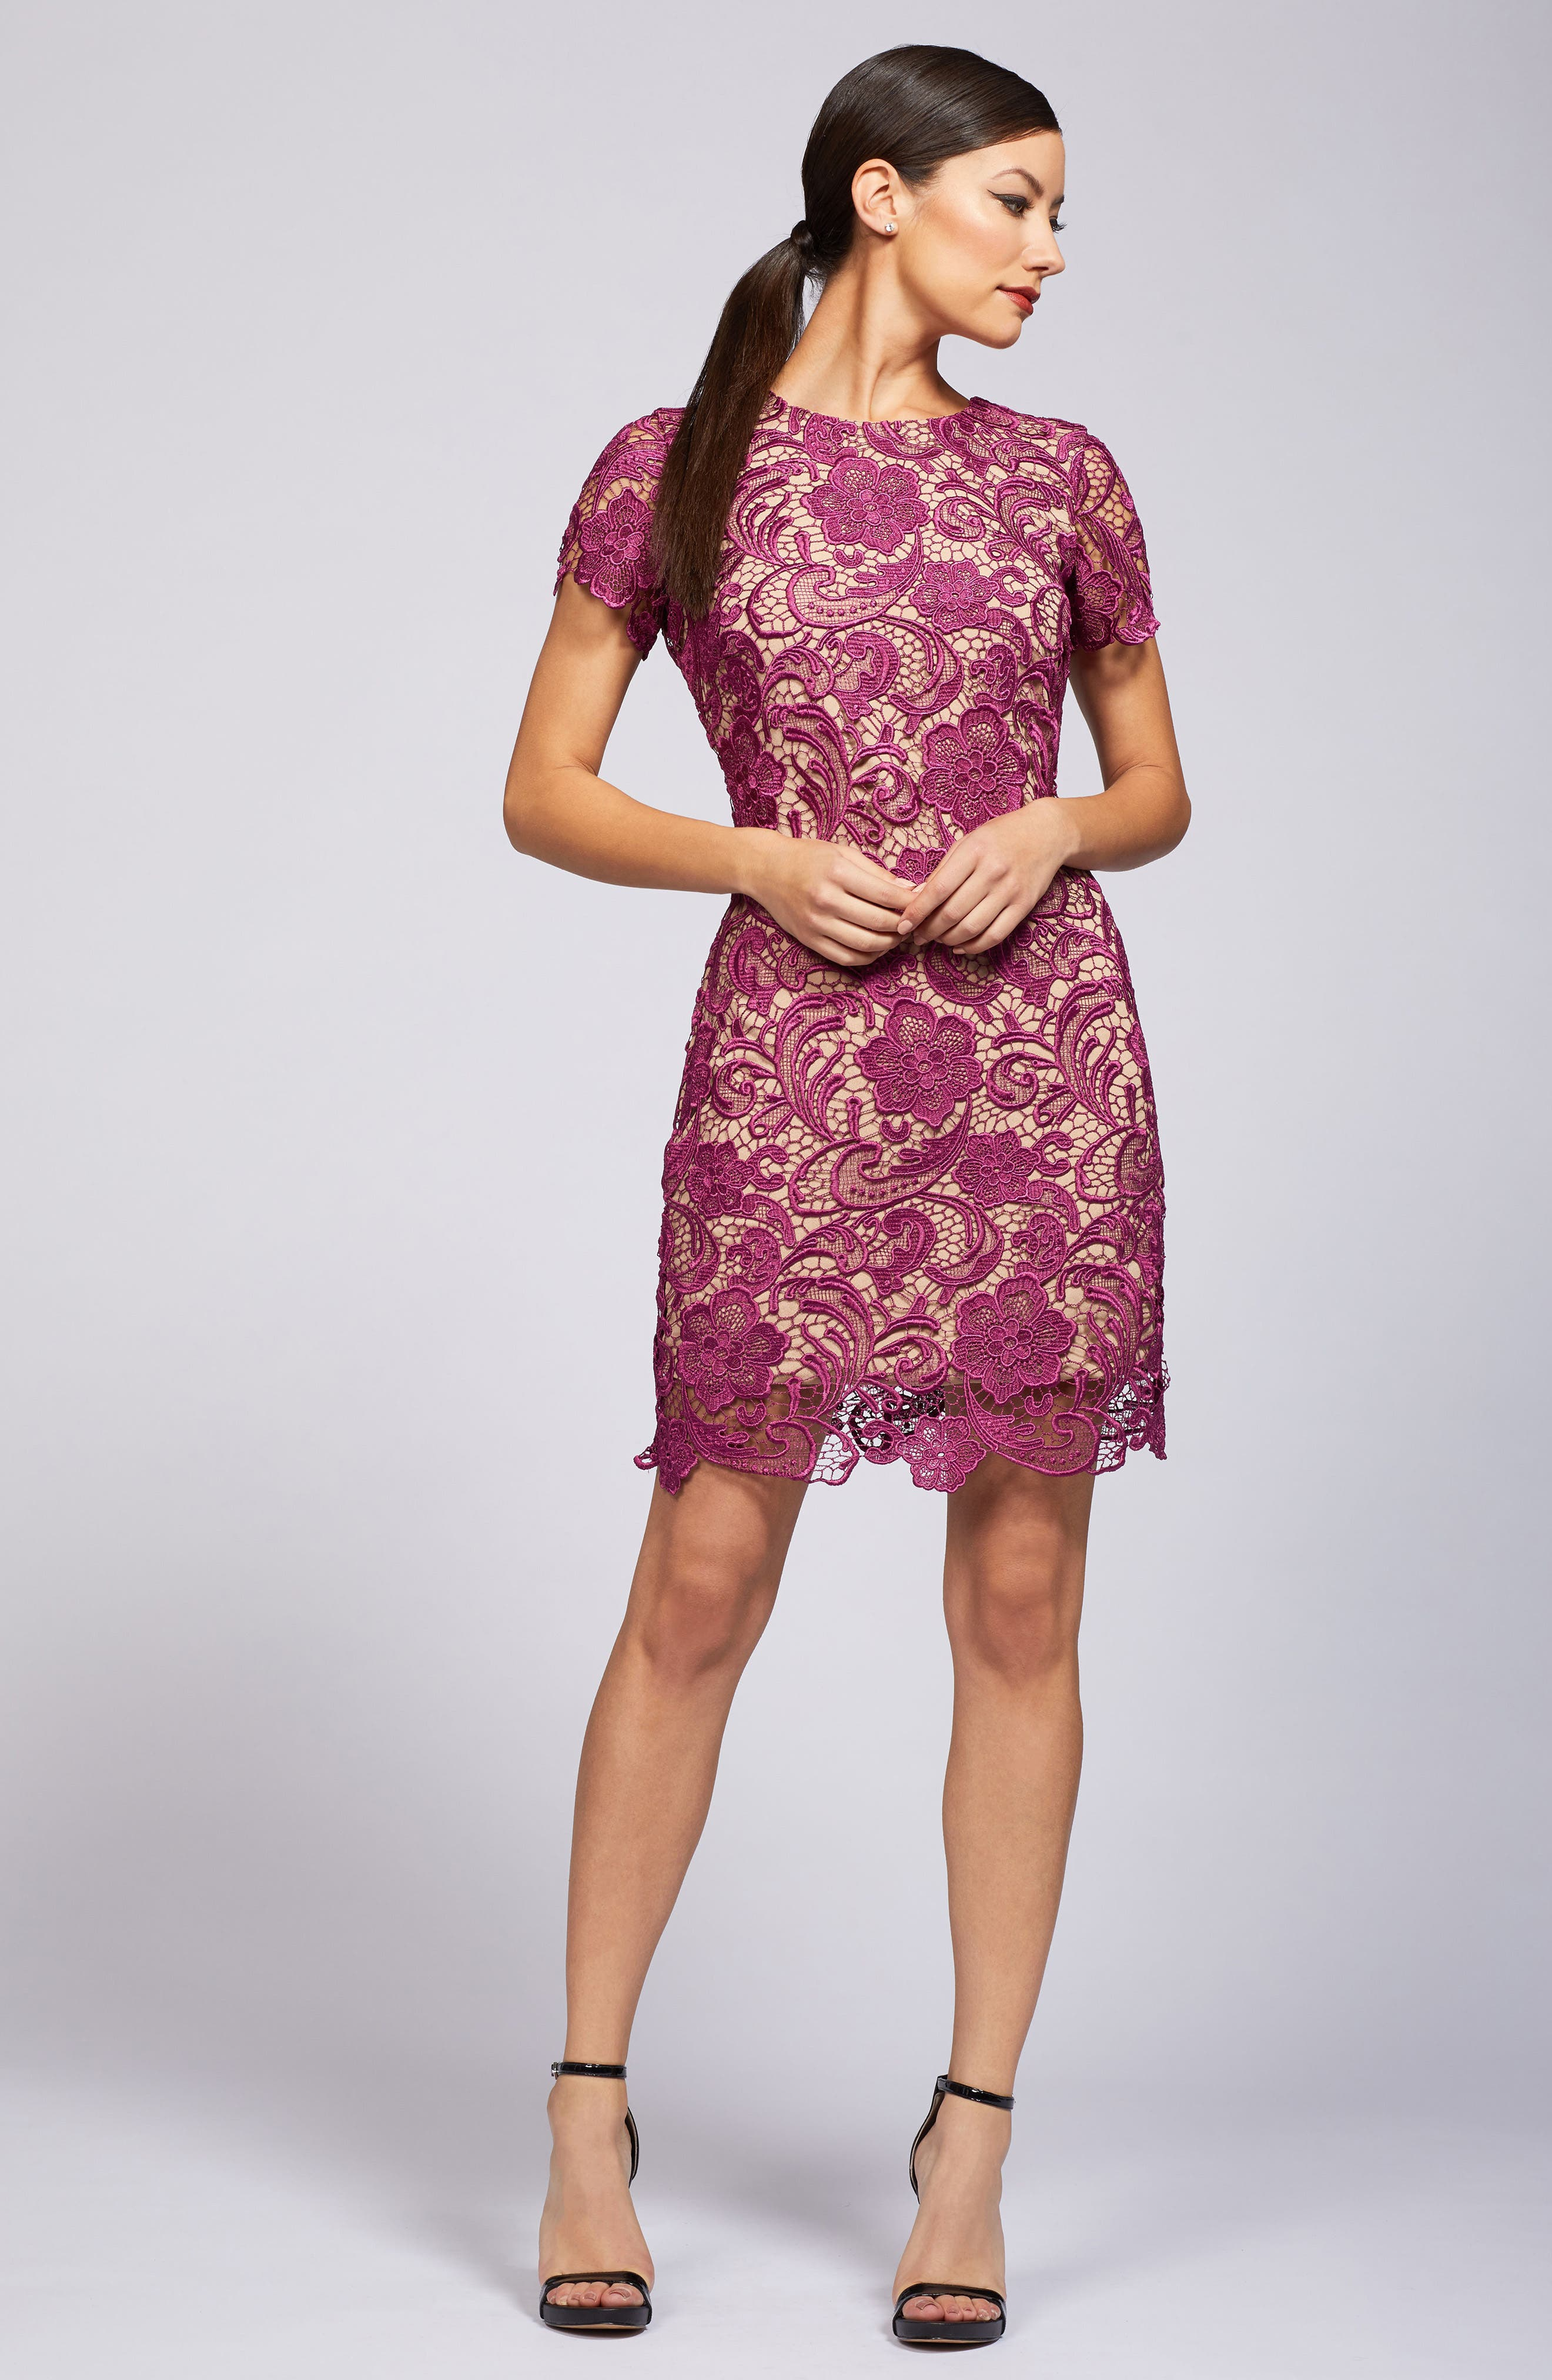 Anna Crochet Lace Sheath Dress,                             Alternate thumbnail 2, color,                             Mulberry/ Nude